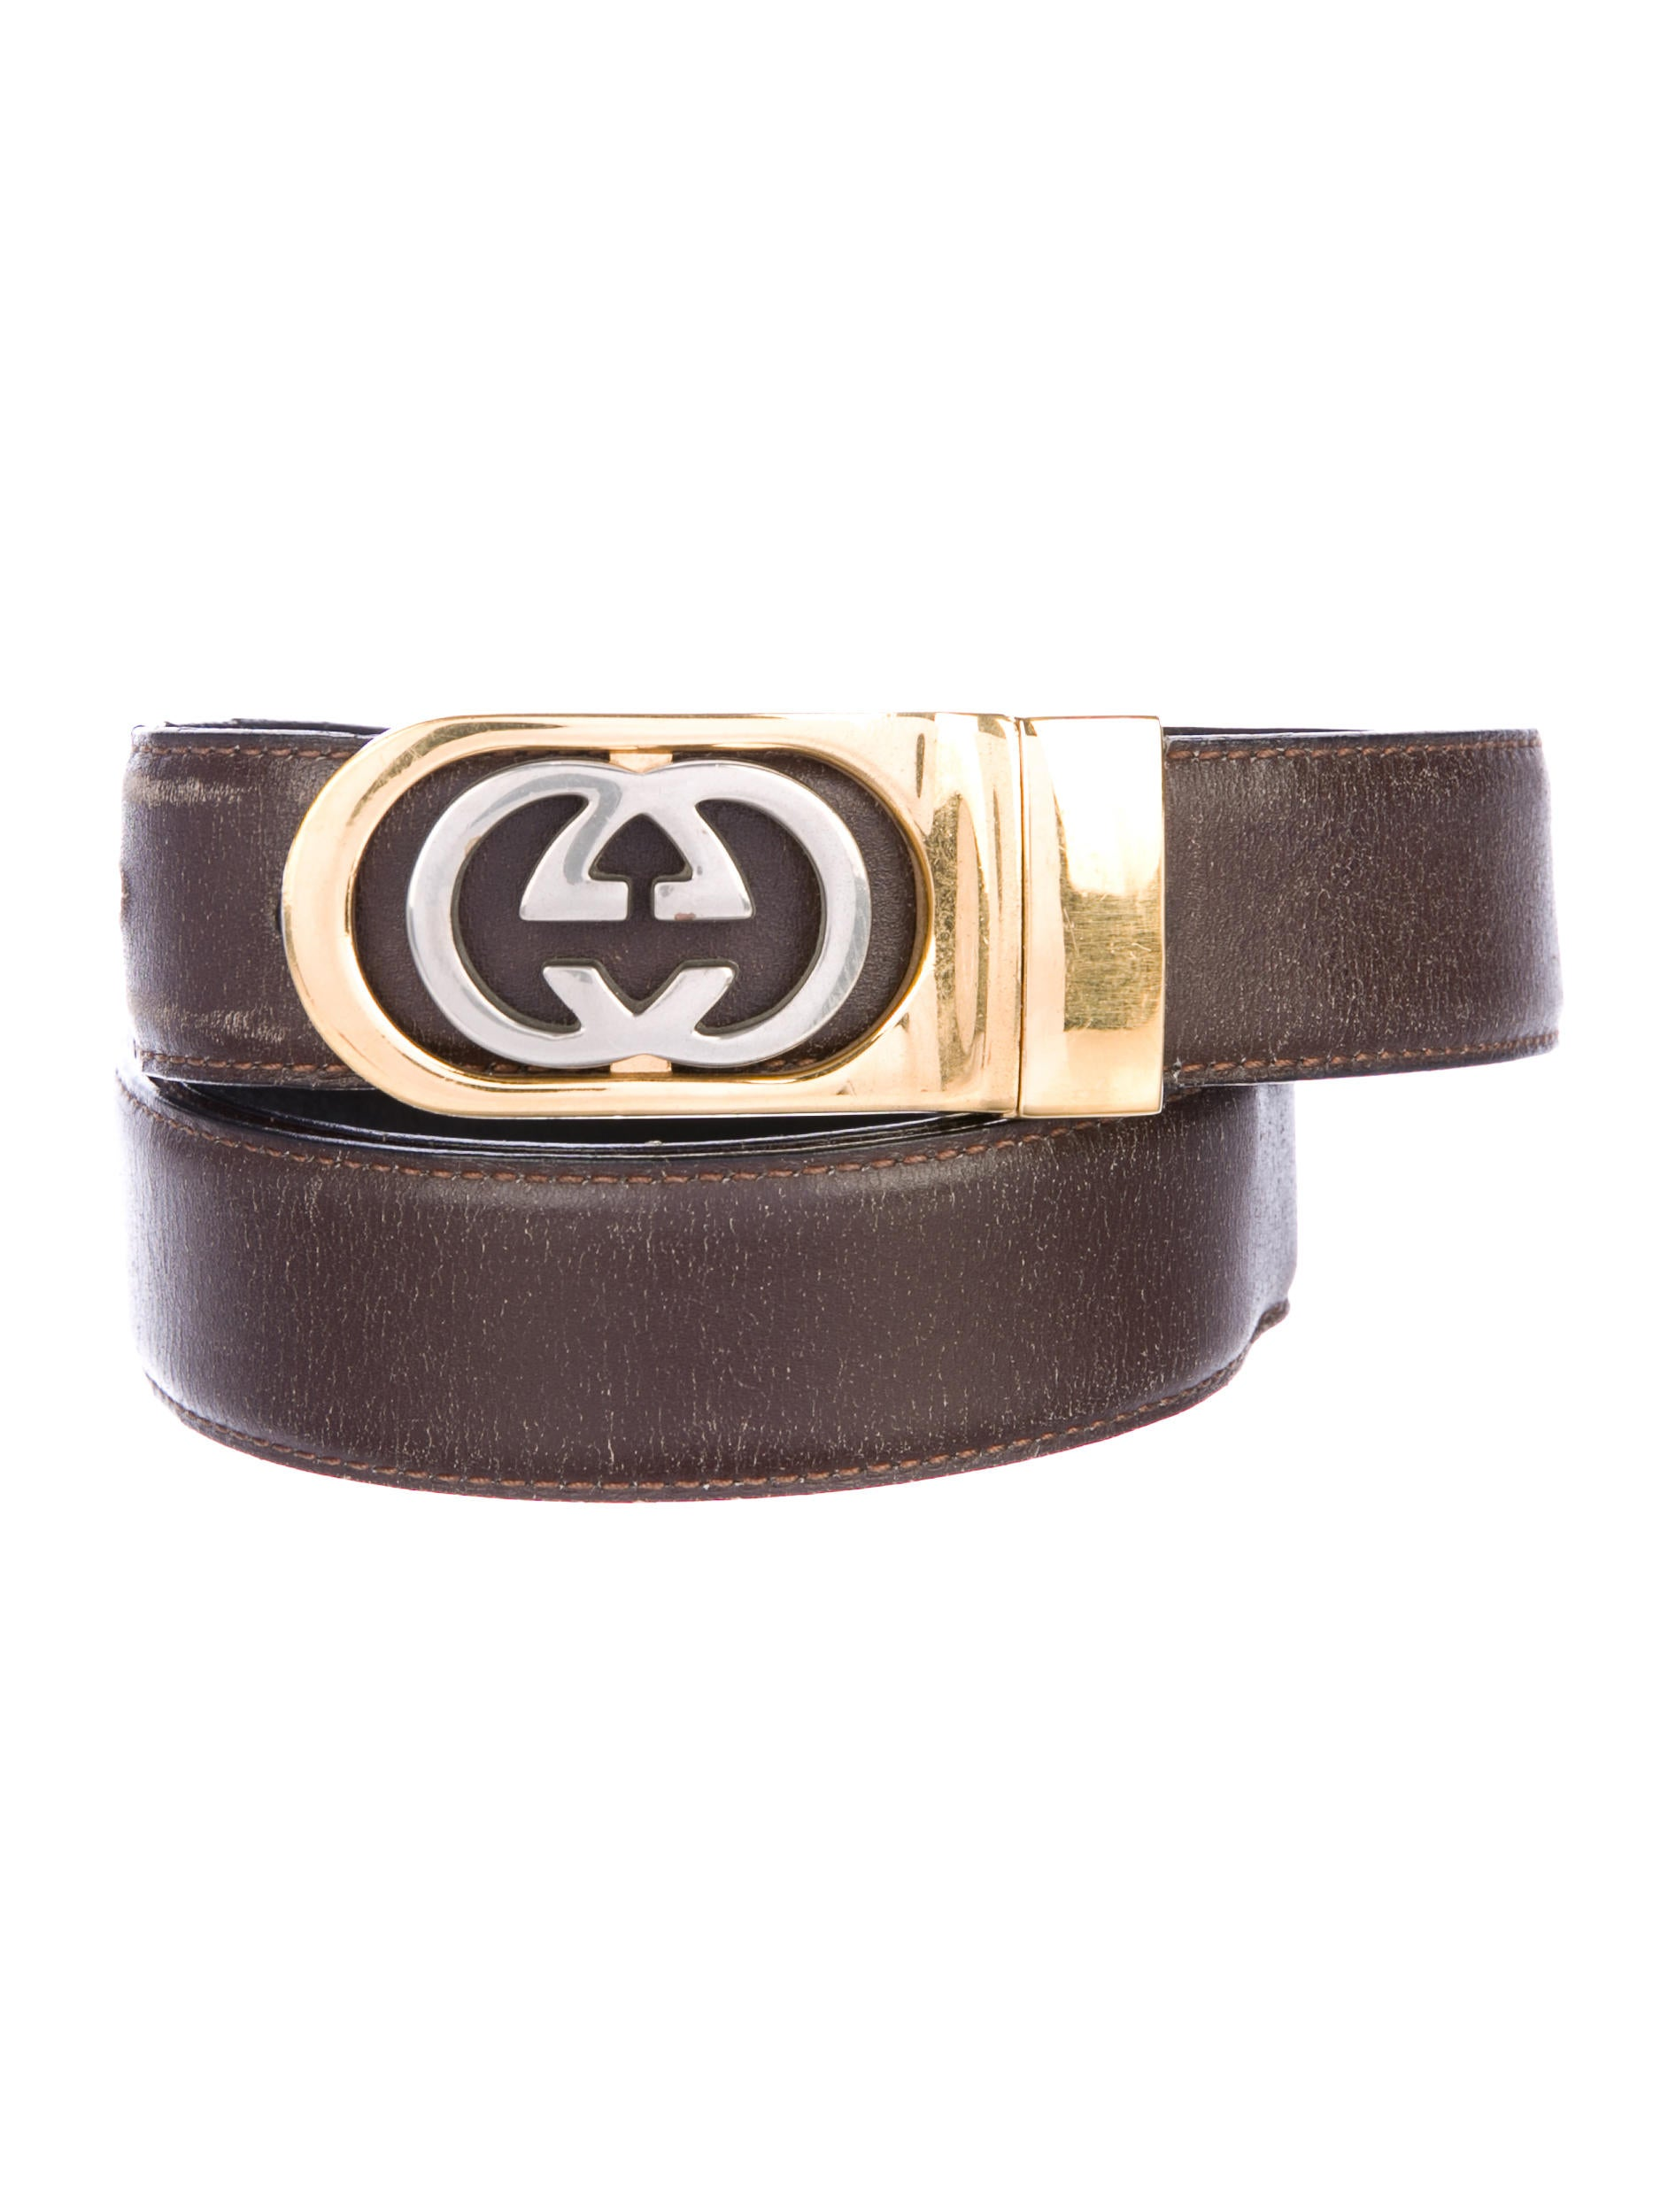 05c23efa5b8 Gucci GG Reversible Leather Belt - Accessories - GUC264641